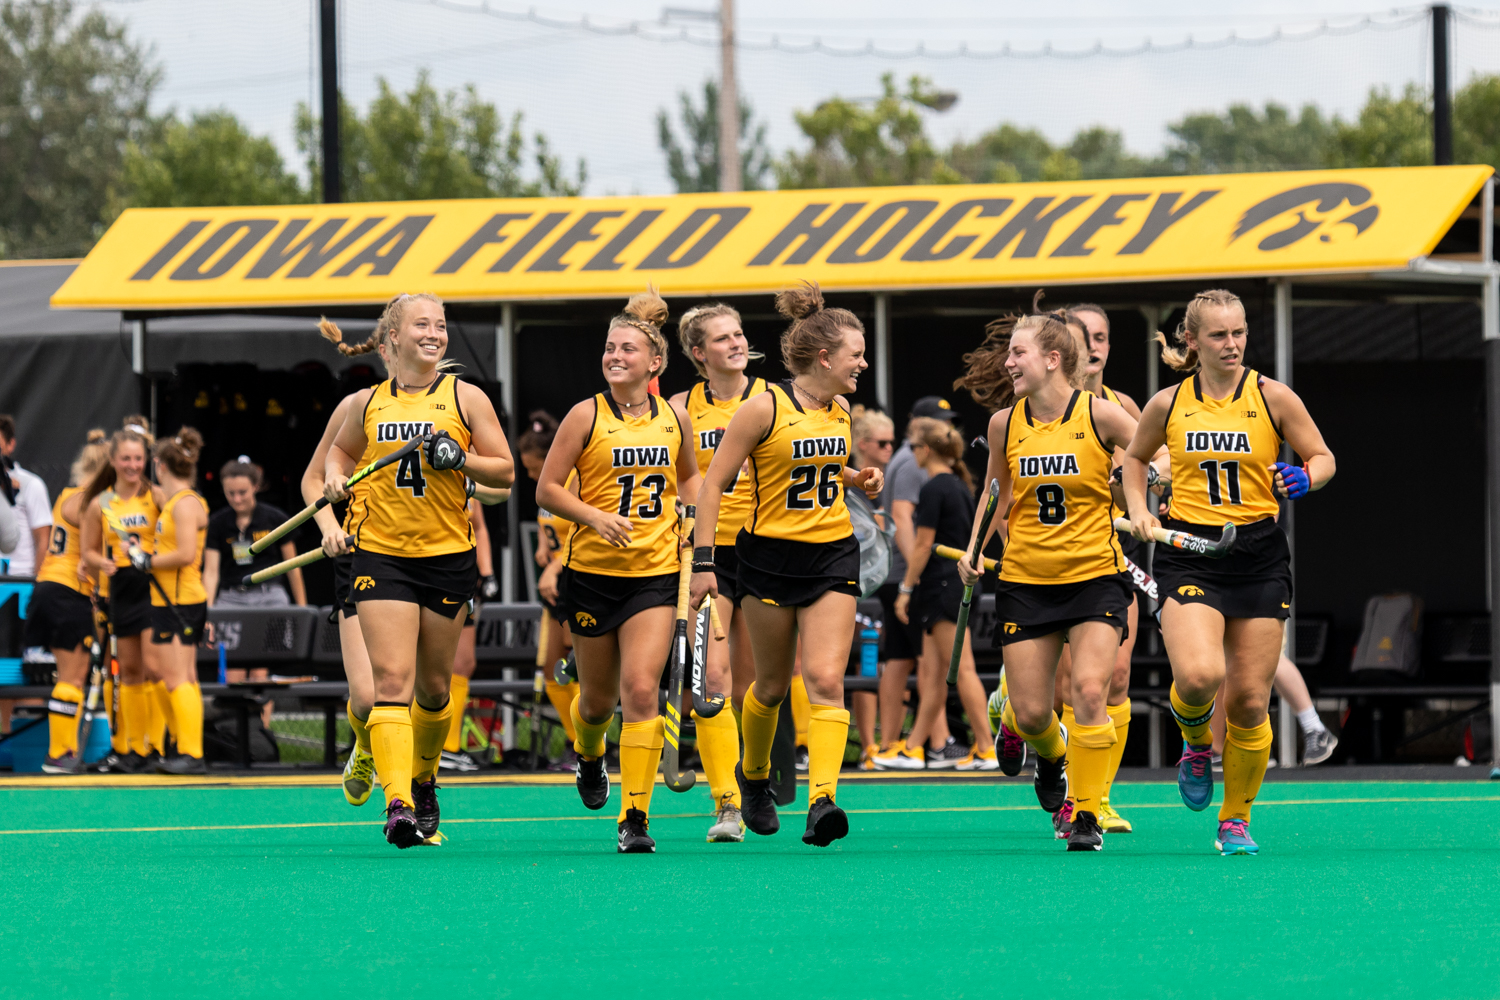 Iowa field hockey players run onto the field before a game against Ball State on Sunday, Sept. 2, 2018. The Hawkeyes defeated the Cardinals 7–1.